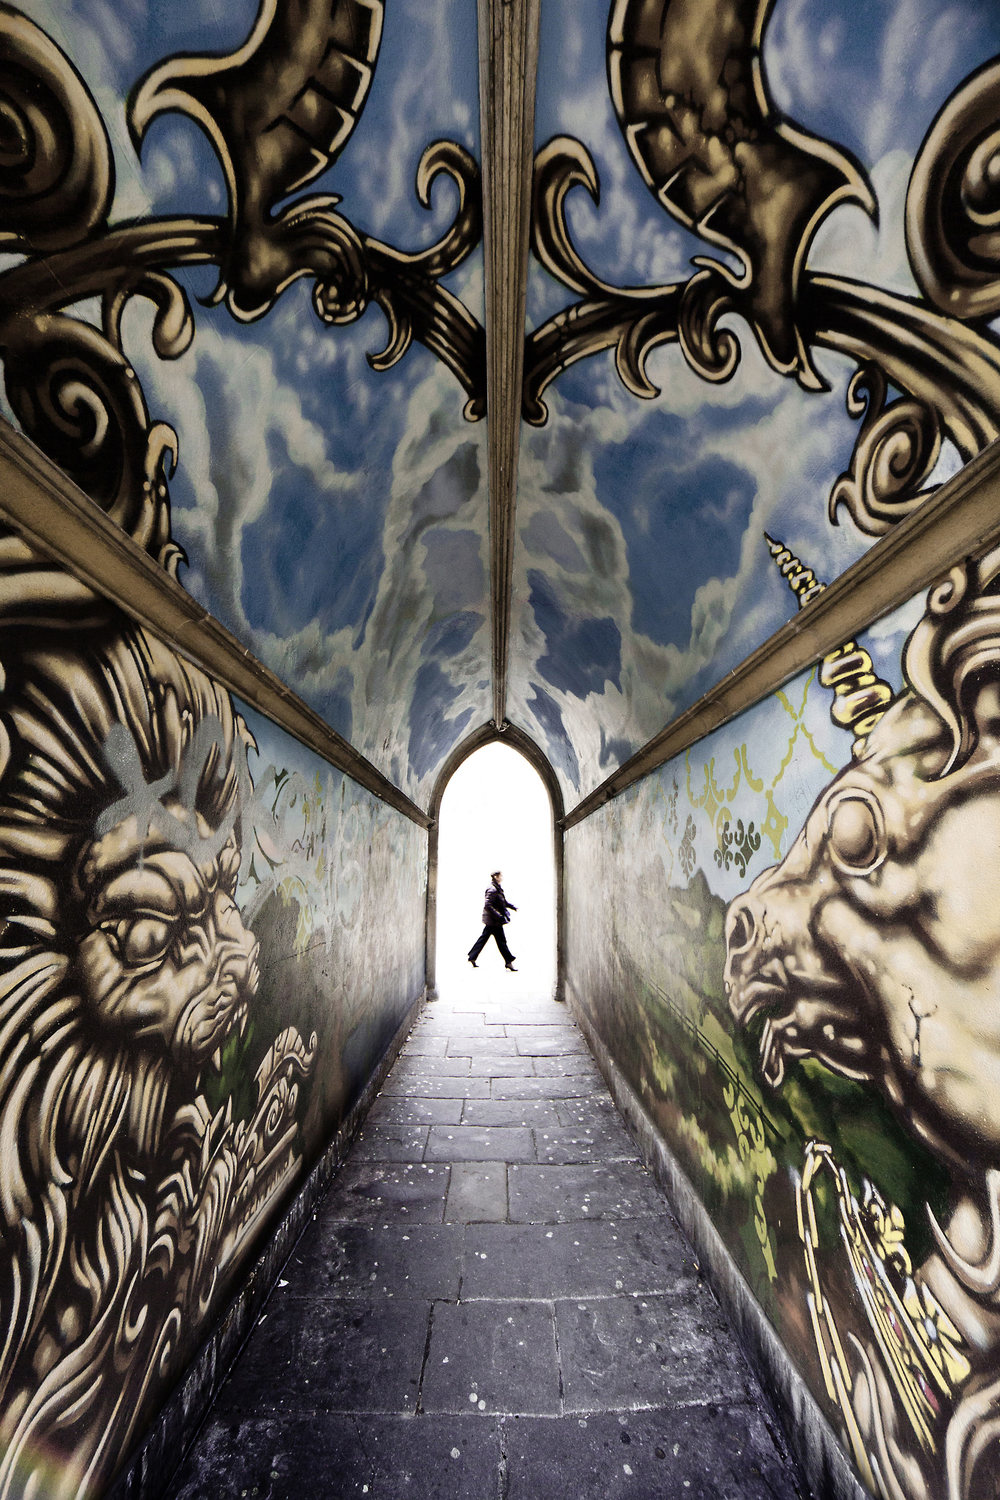 Joe Clarke, Bristol photographer, 12mm, super wide, graffiti, tunnel